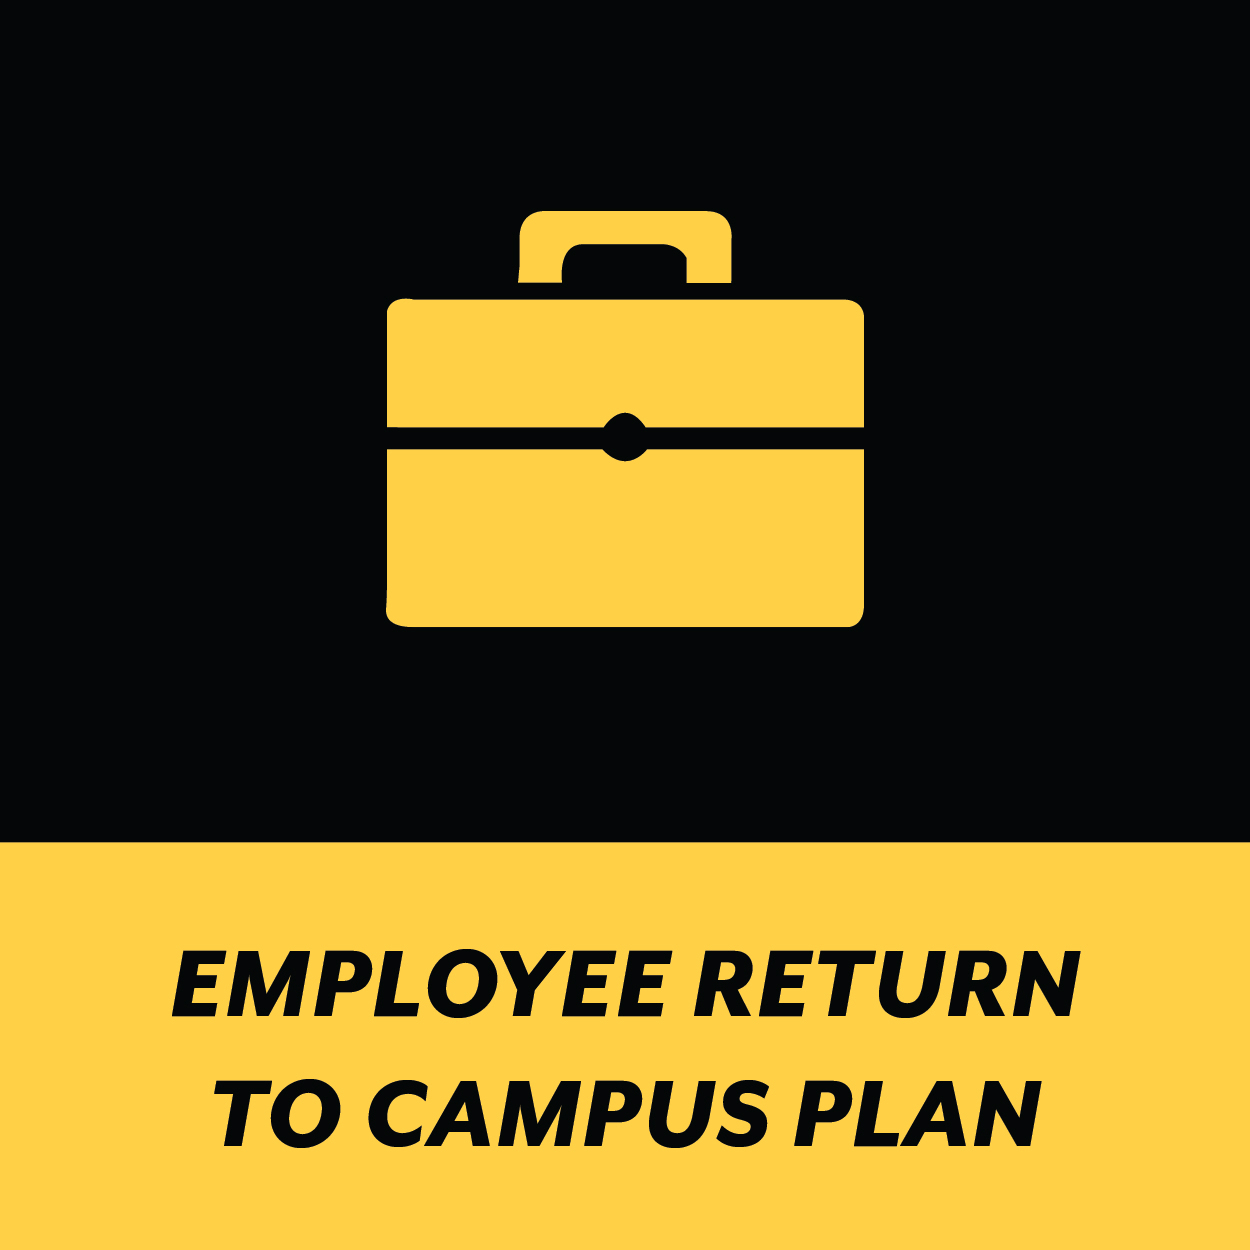 Employee Return to Campus Plan